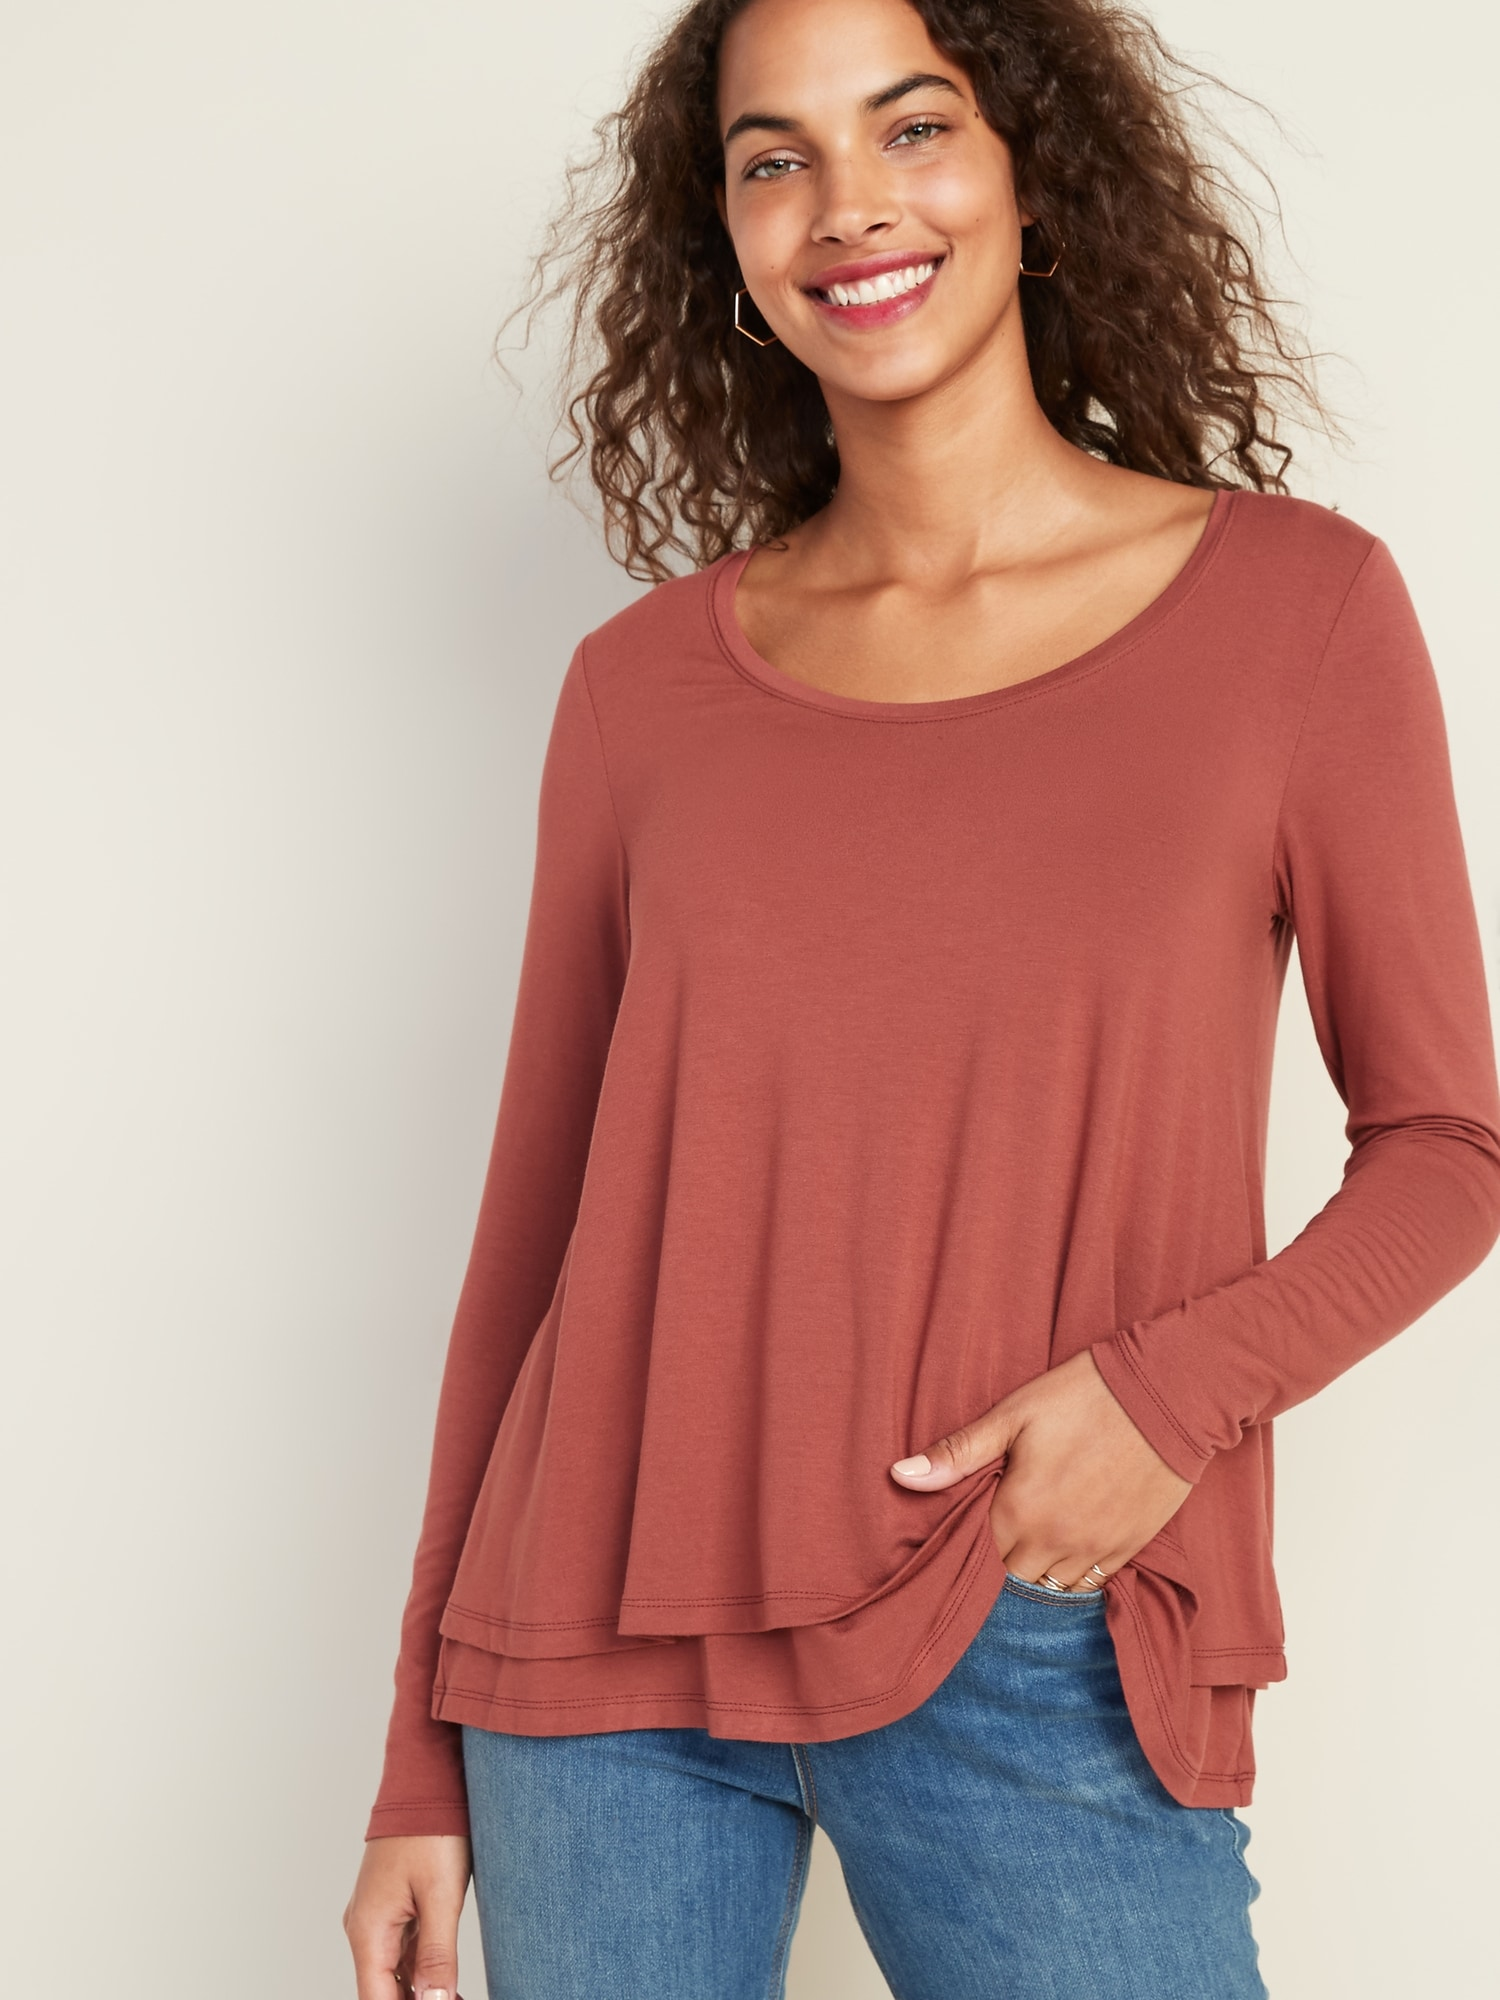 NEW GAP MATERNITY Brown Double Layer Knit Nursing Top Shirt XXS